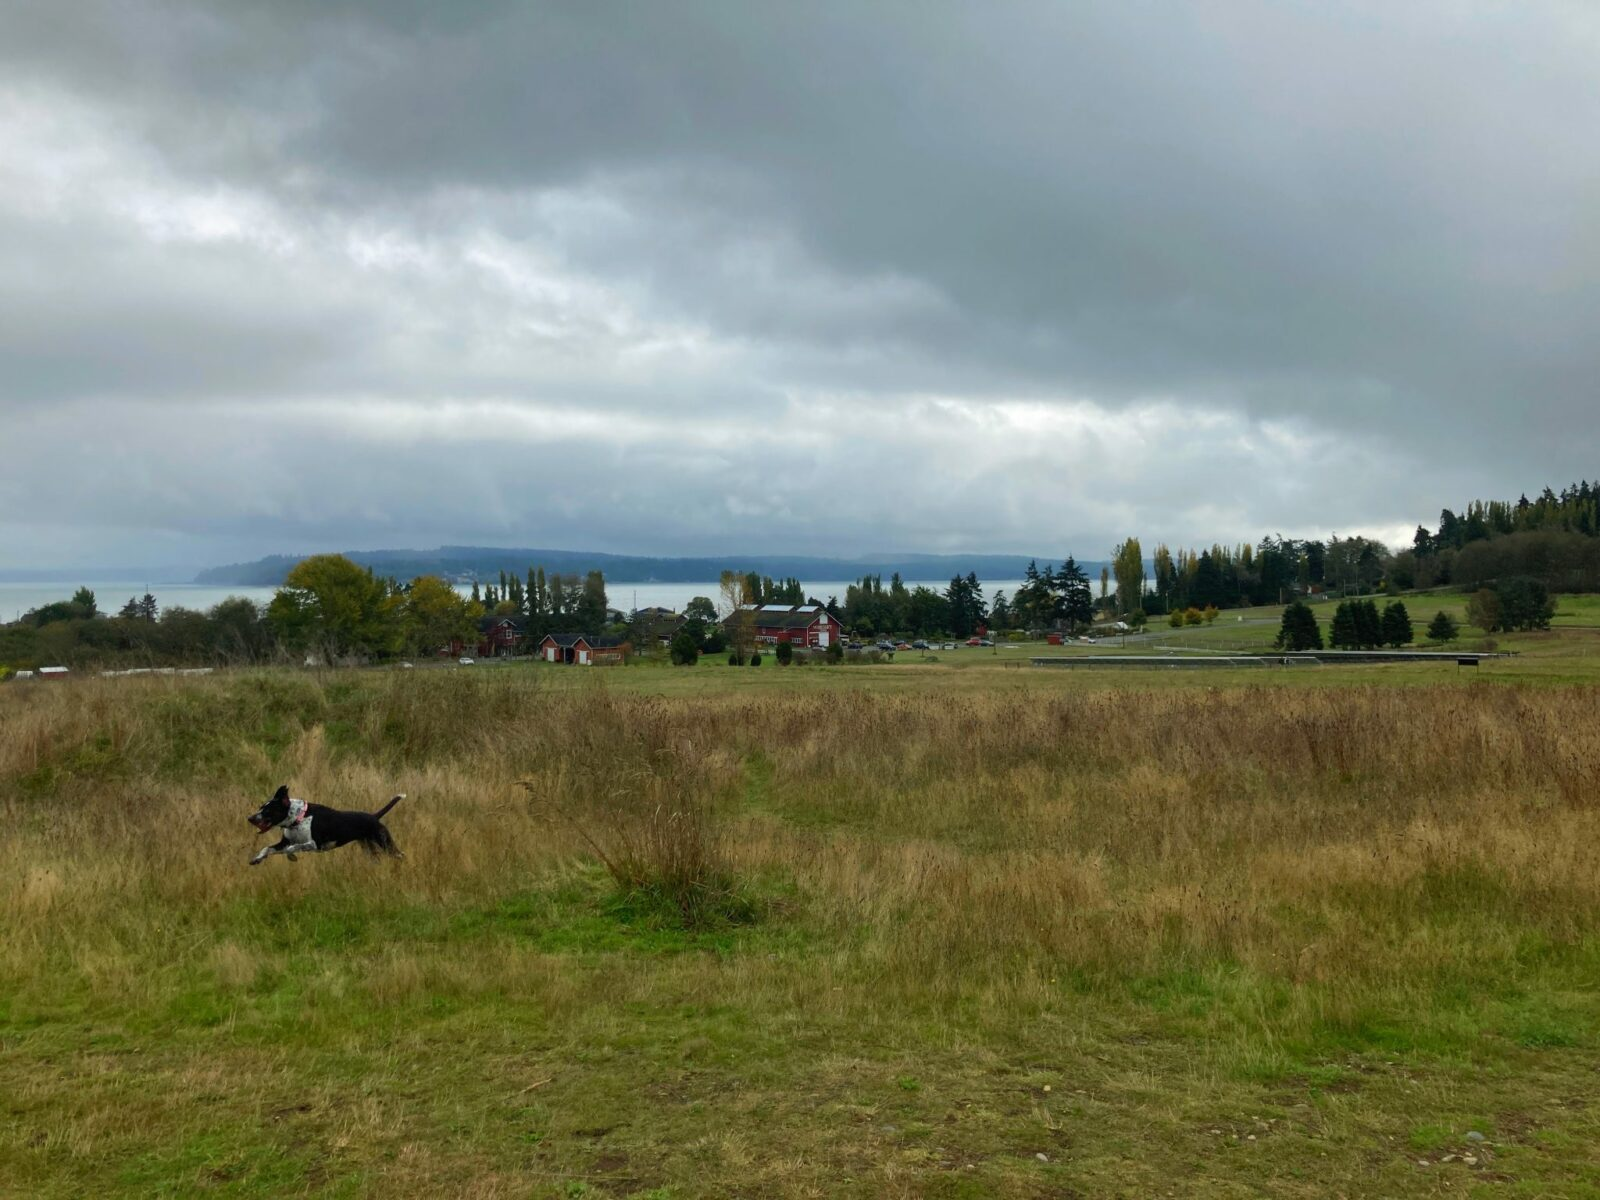 Dog friendly whidbey island hikes include greenbank farm. A black and white dog runs with all it's paws off the ground through a grassy field. In the distance there are farm buildings, forest, water and a land across the water